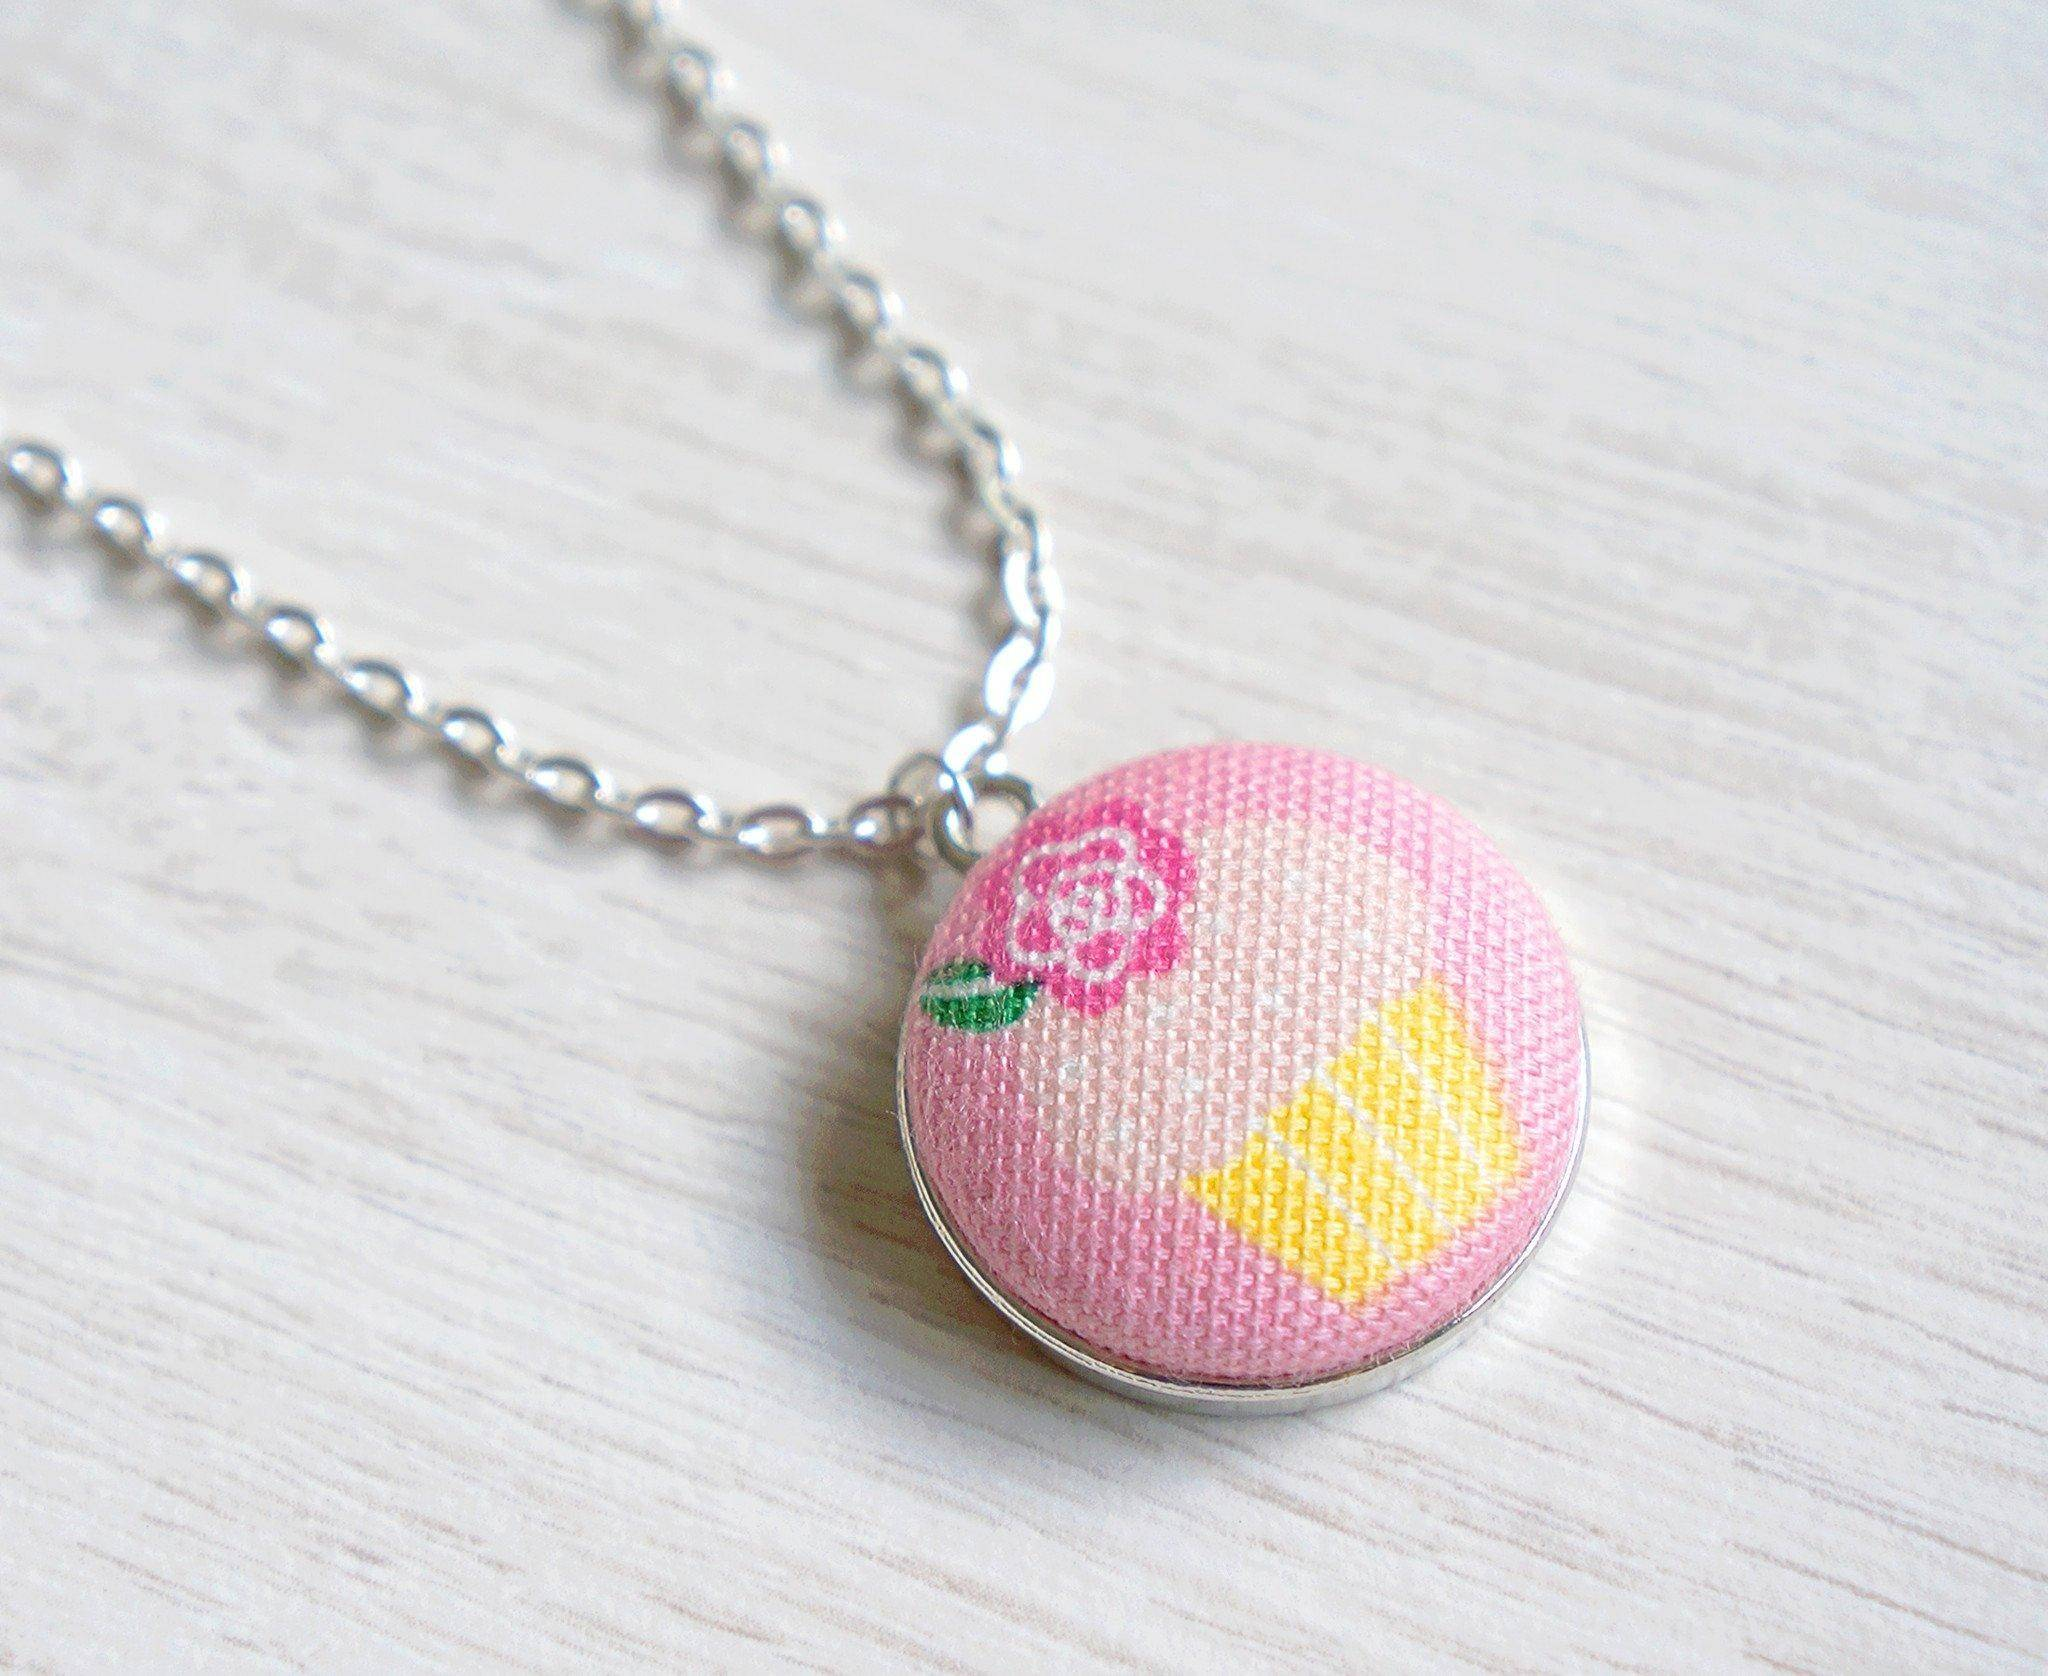 Sunrise Cupcake Handmade Fabric Button Necklace - Necklaces - Paperdaise Accessories - Naiise